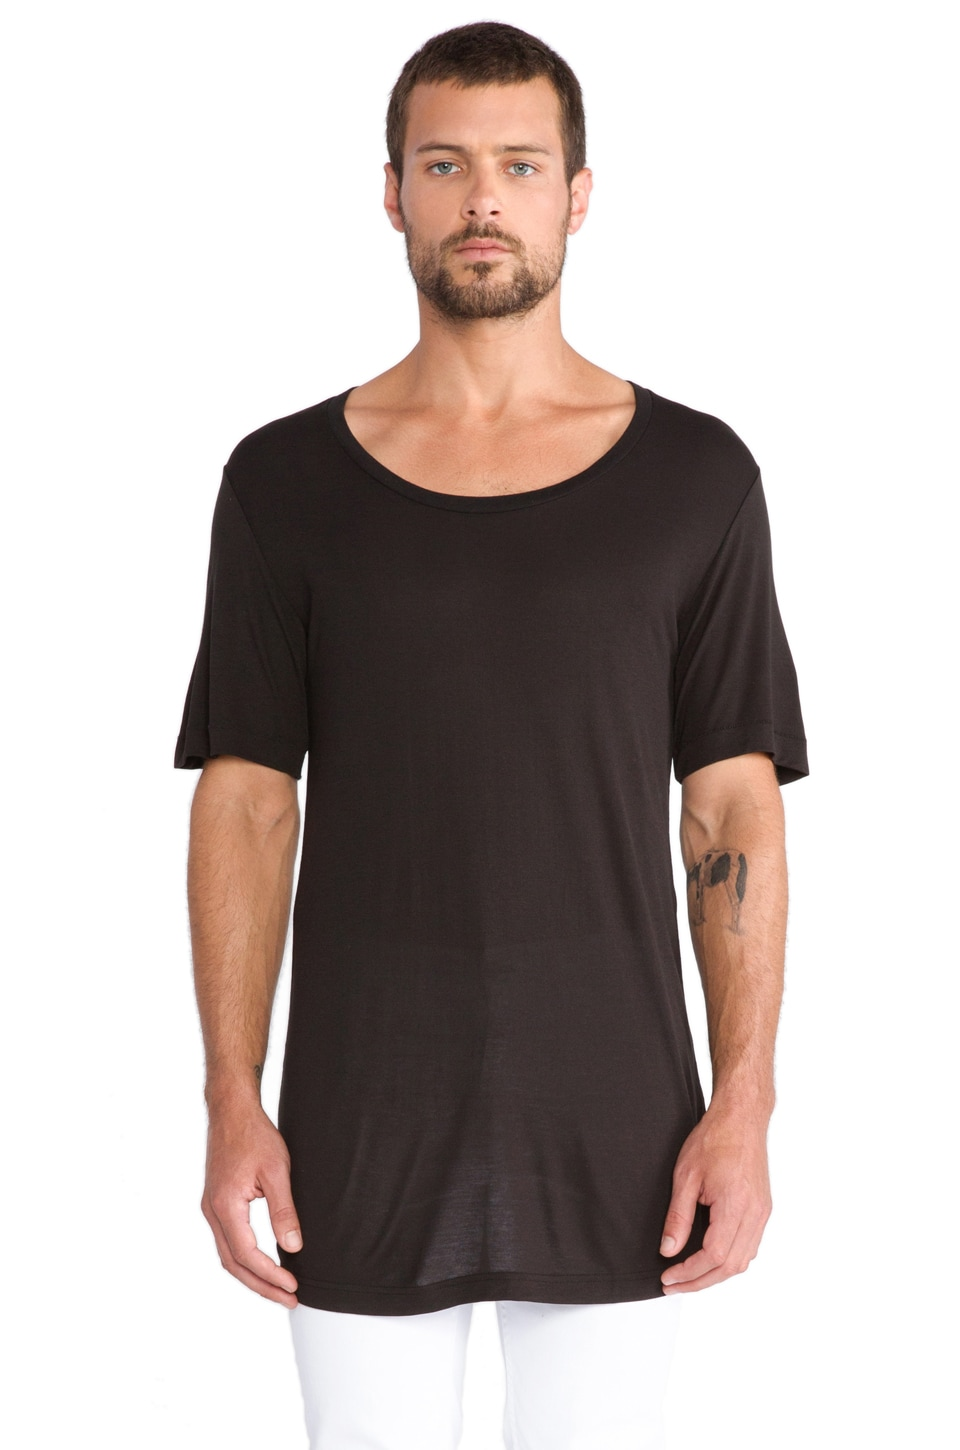 BLK DNM T-Shirt 12 in Black